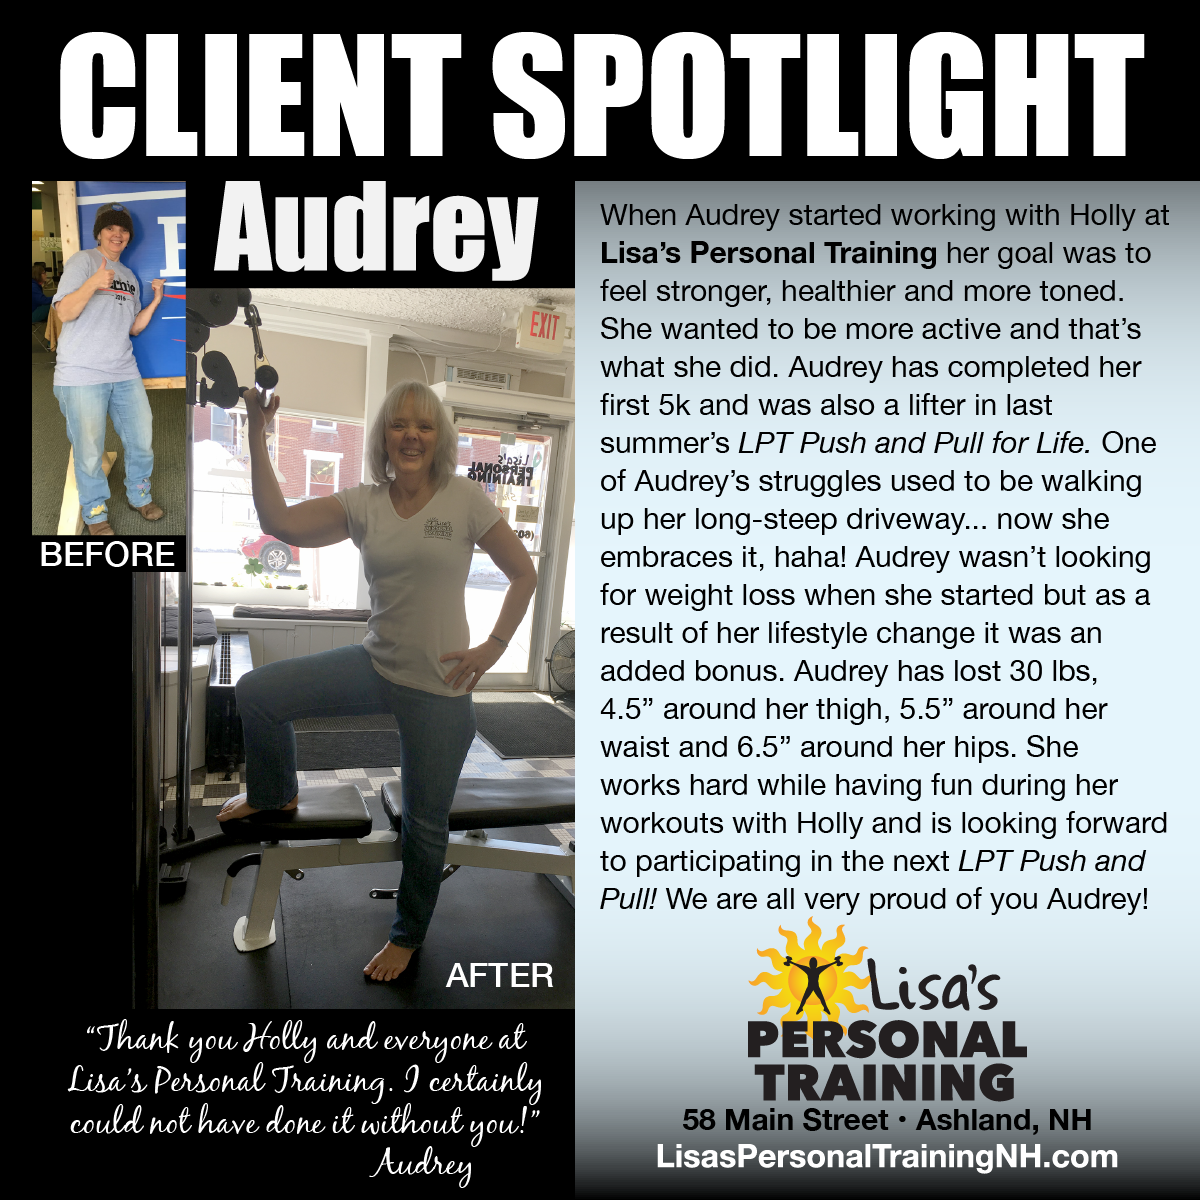 Audrey Garretson at Lisa's Personal Training